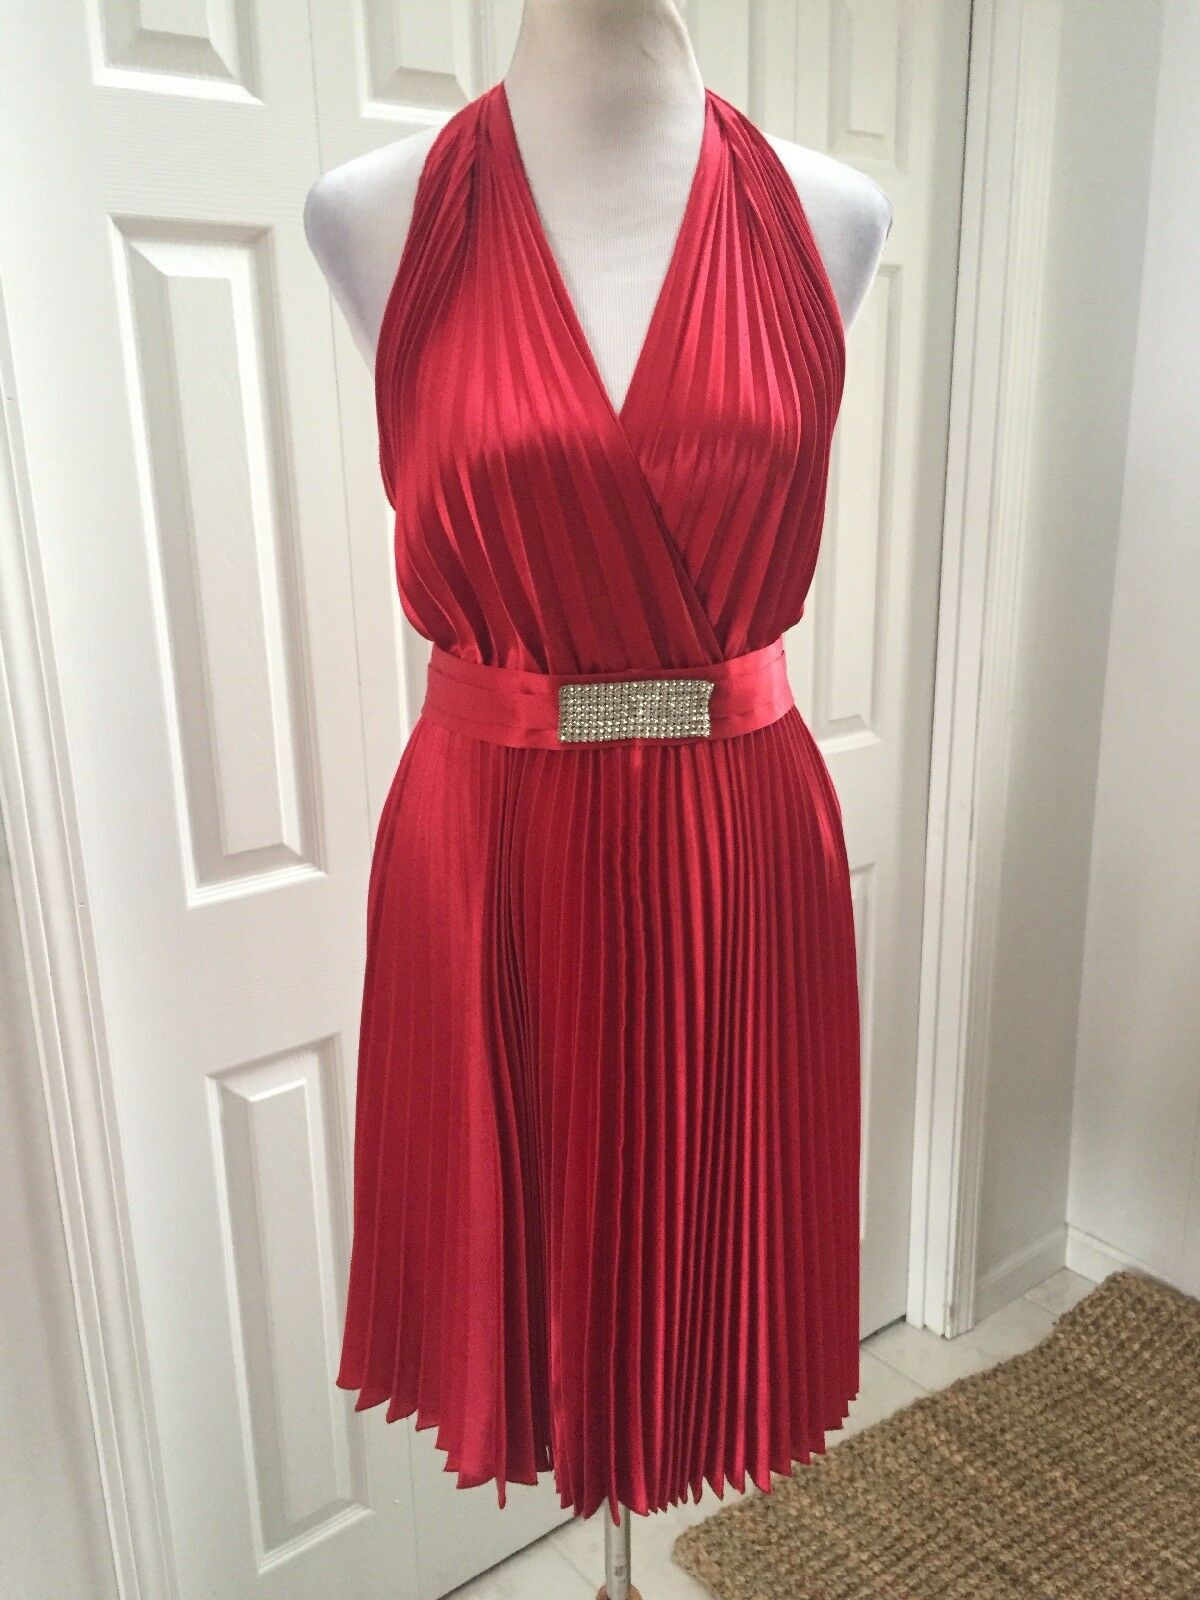 NWT  Joseph Ribkoff Couture Red Halter Pleated Full Skirt Marilyn Monroe 8